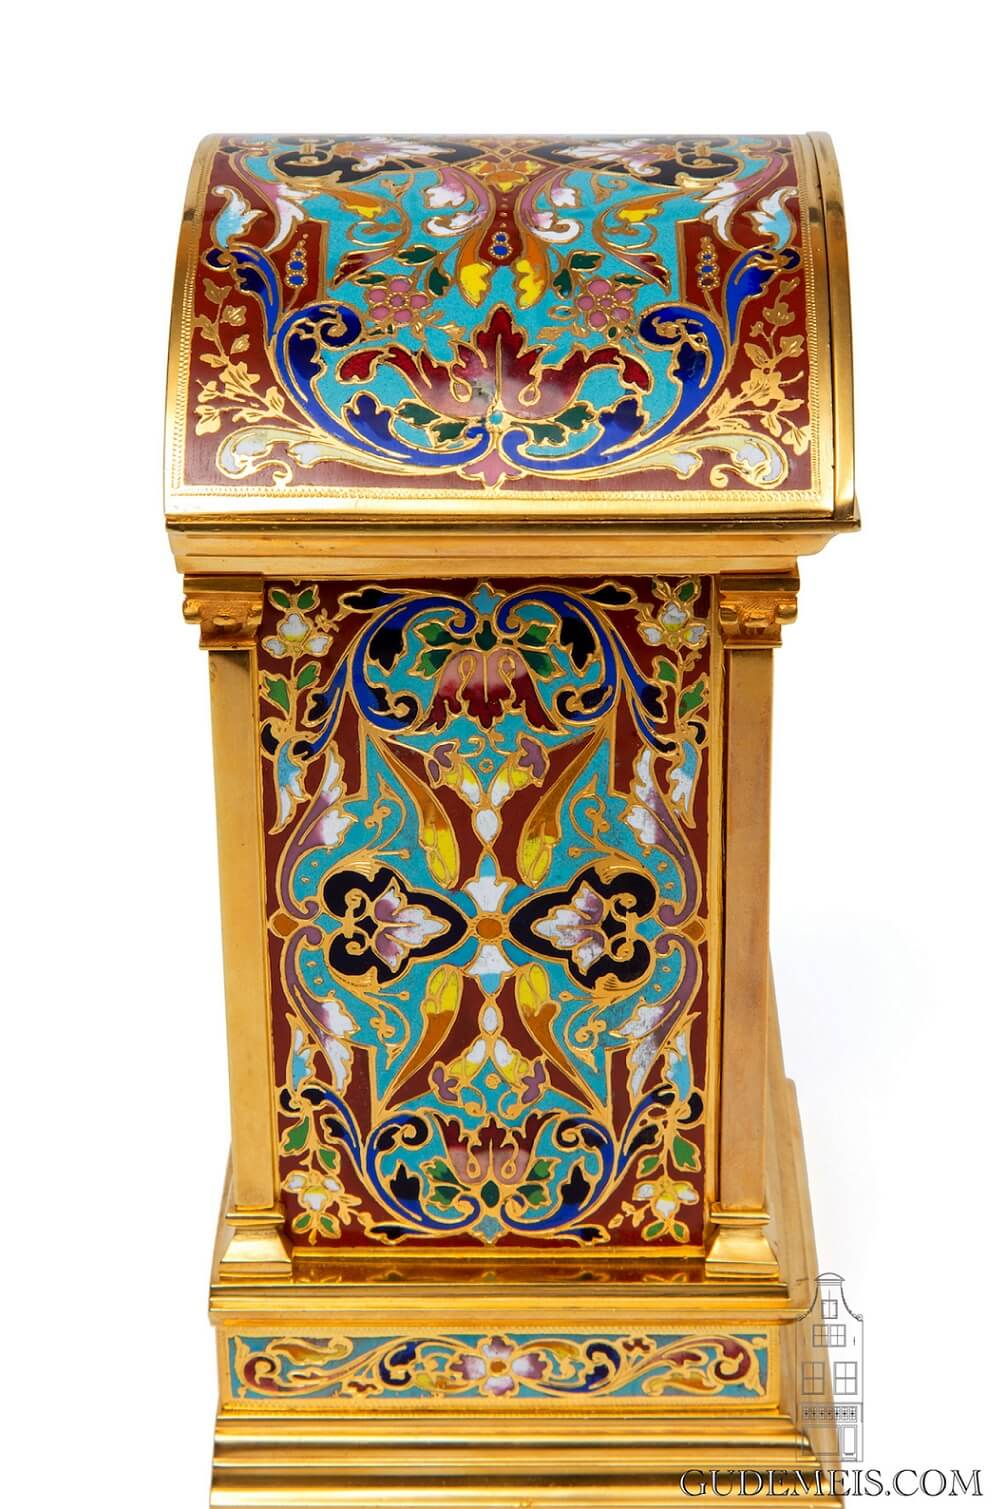 French-cloisonne-enamel-champleve-gilt-brass-carriage-travel-arched-striking-antique-clock-